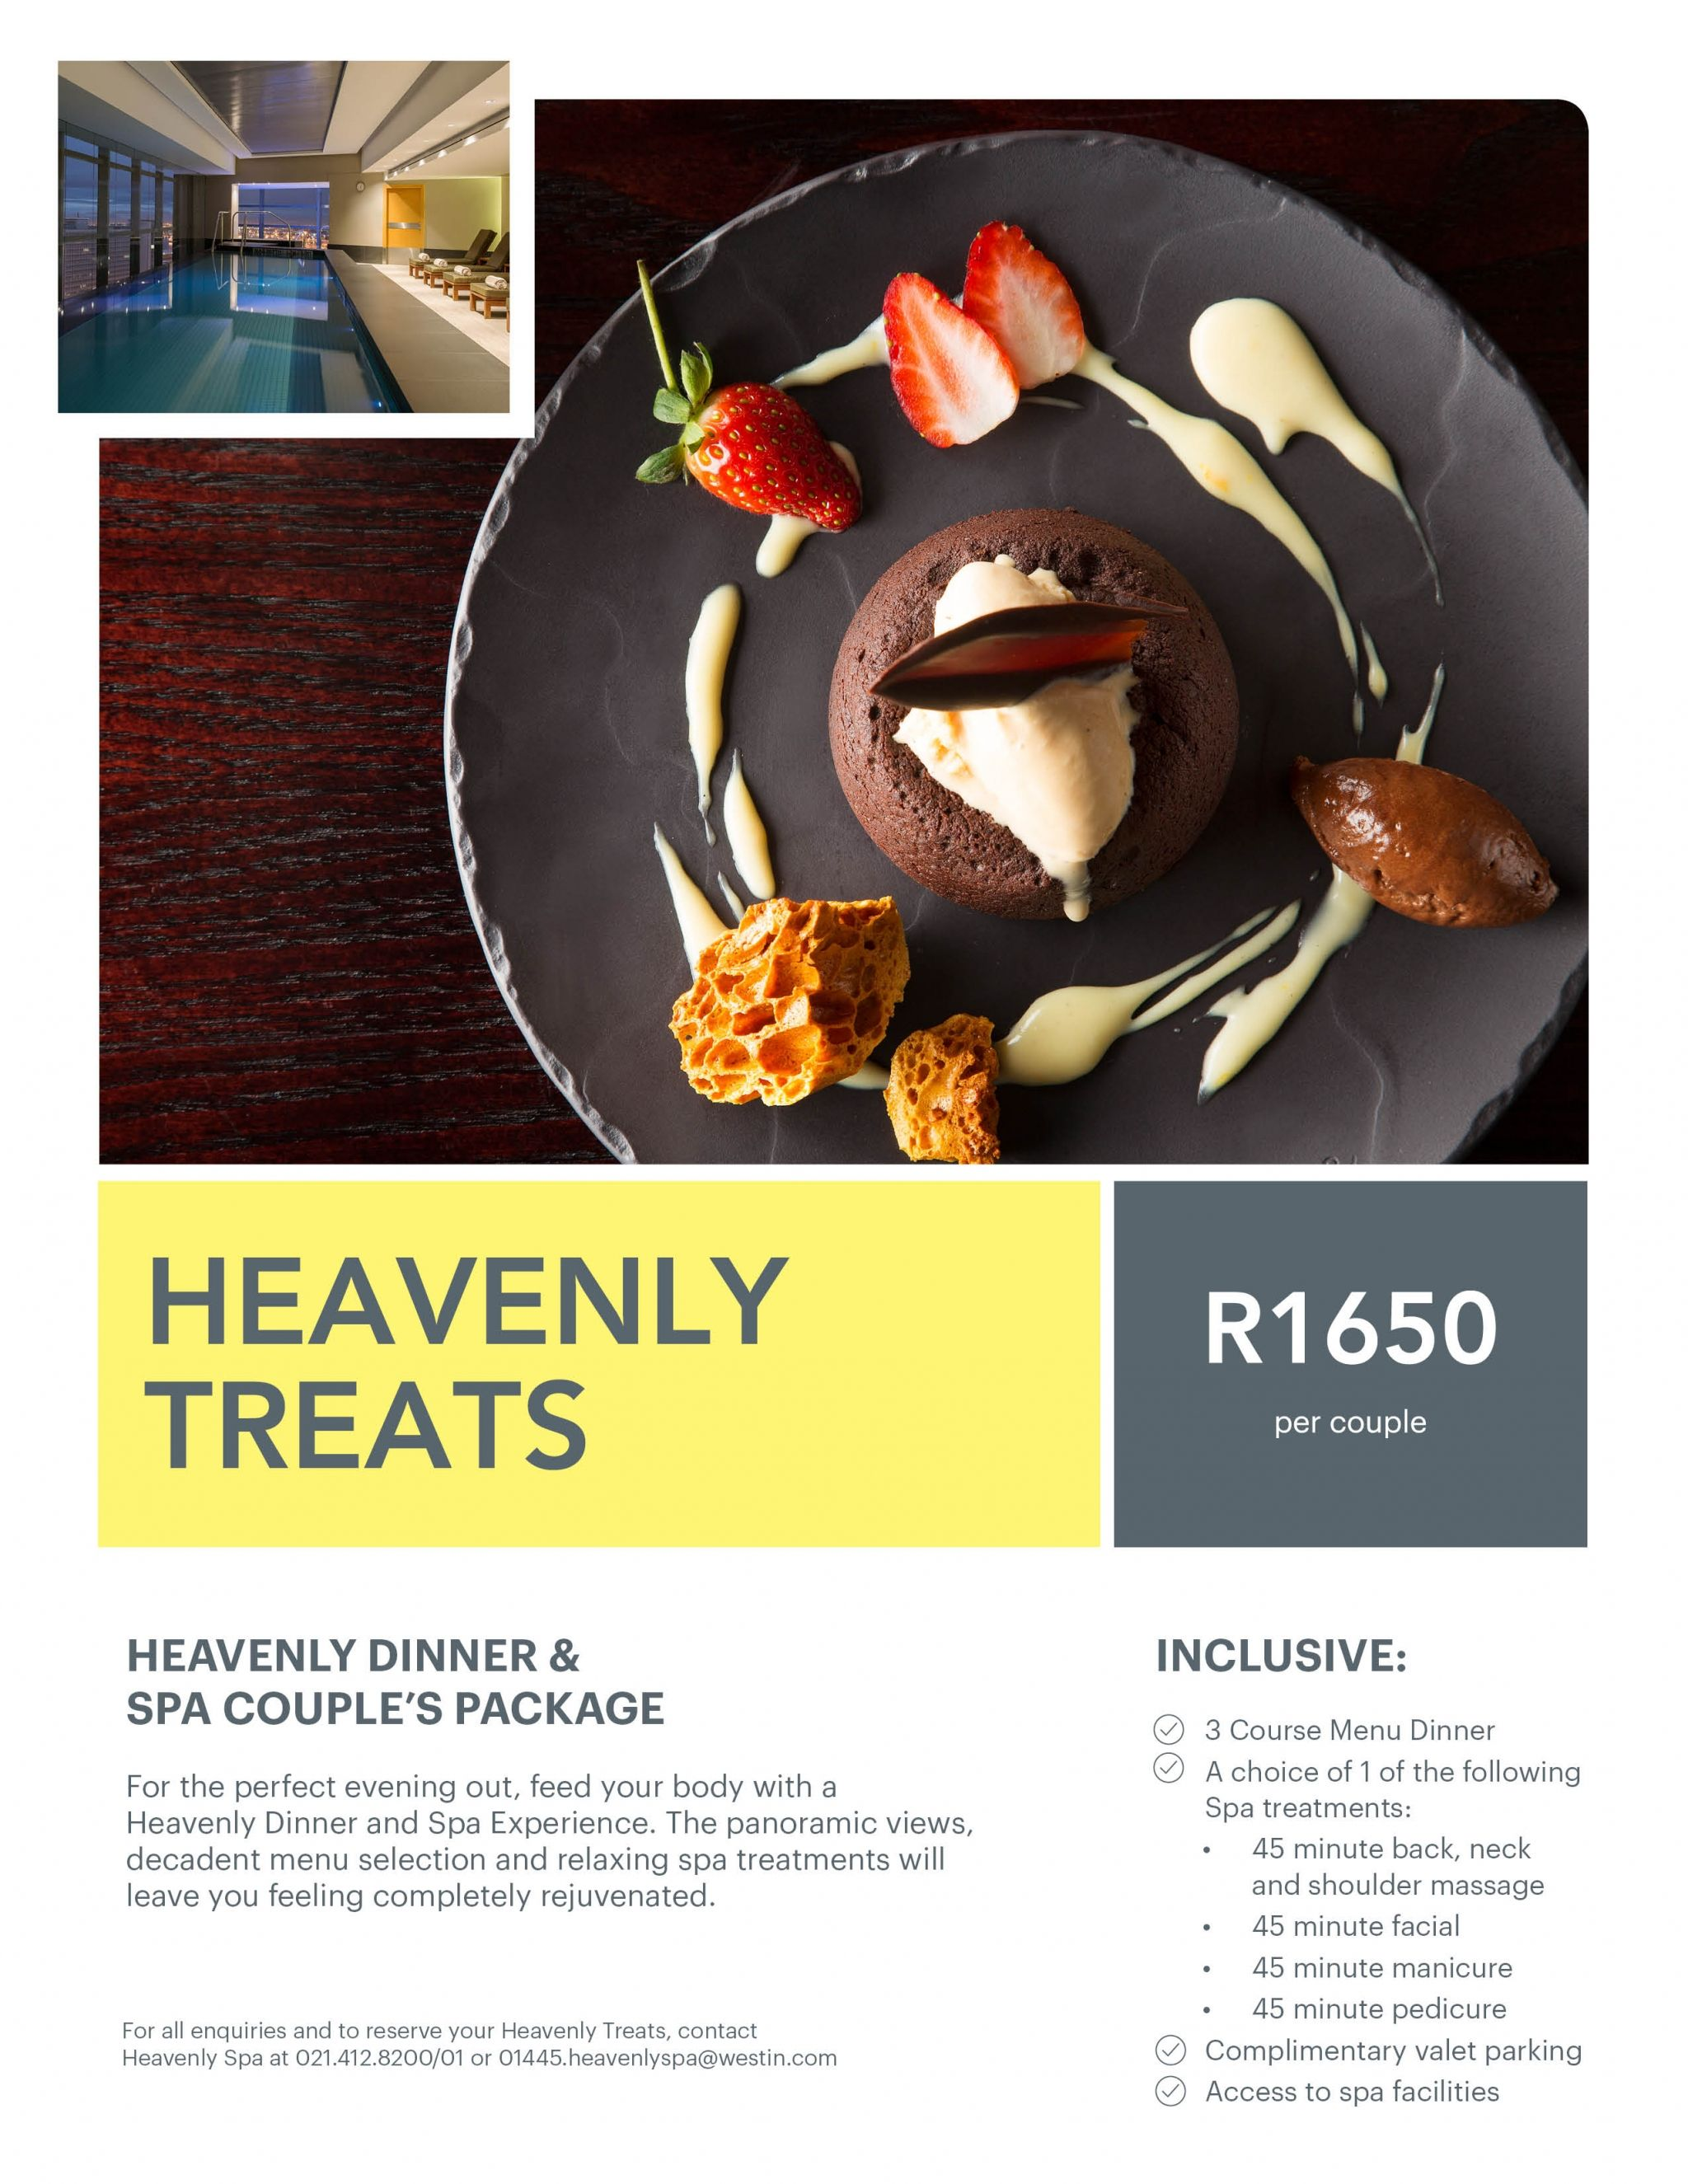 The Westin Cape town Hotel Heavenly Dinner flyer